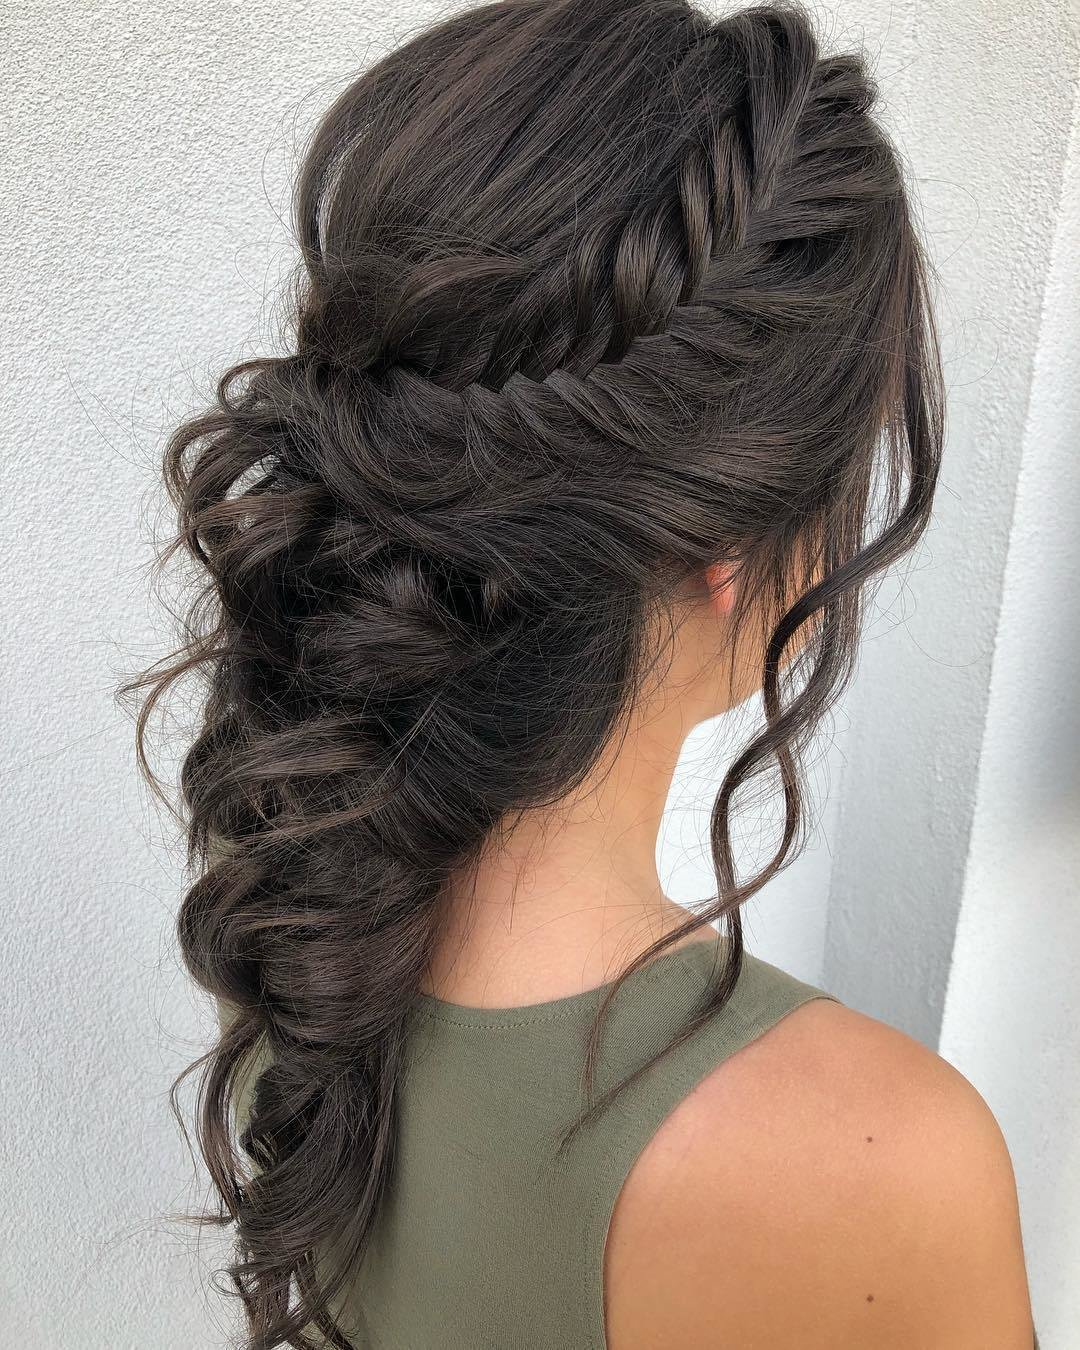 The Best 9 Wedding Hair Trends For 2019 Pictures